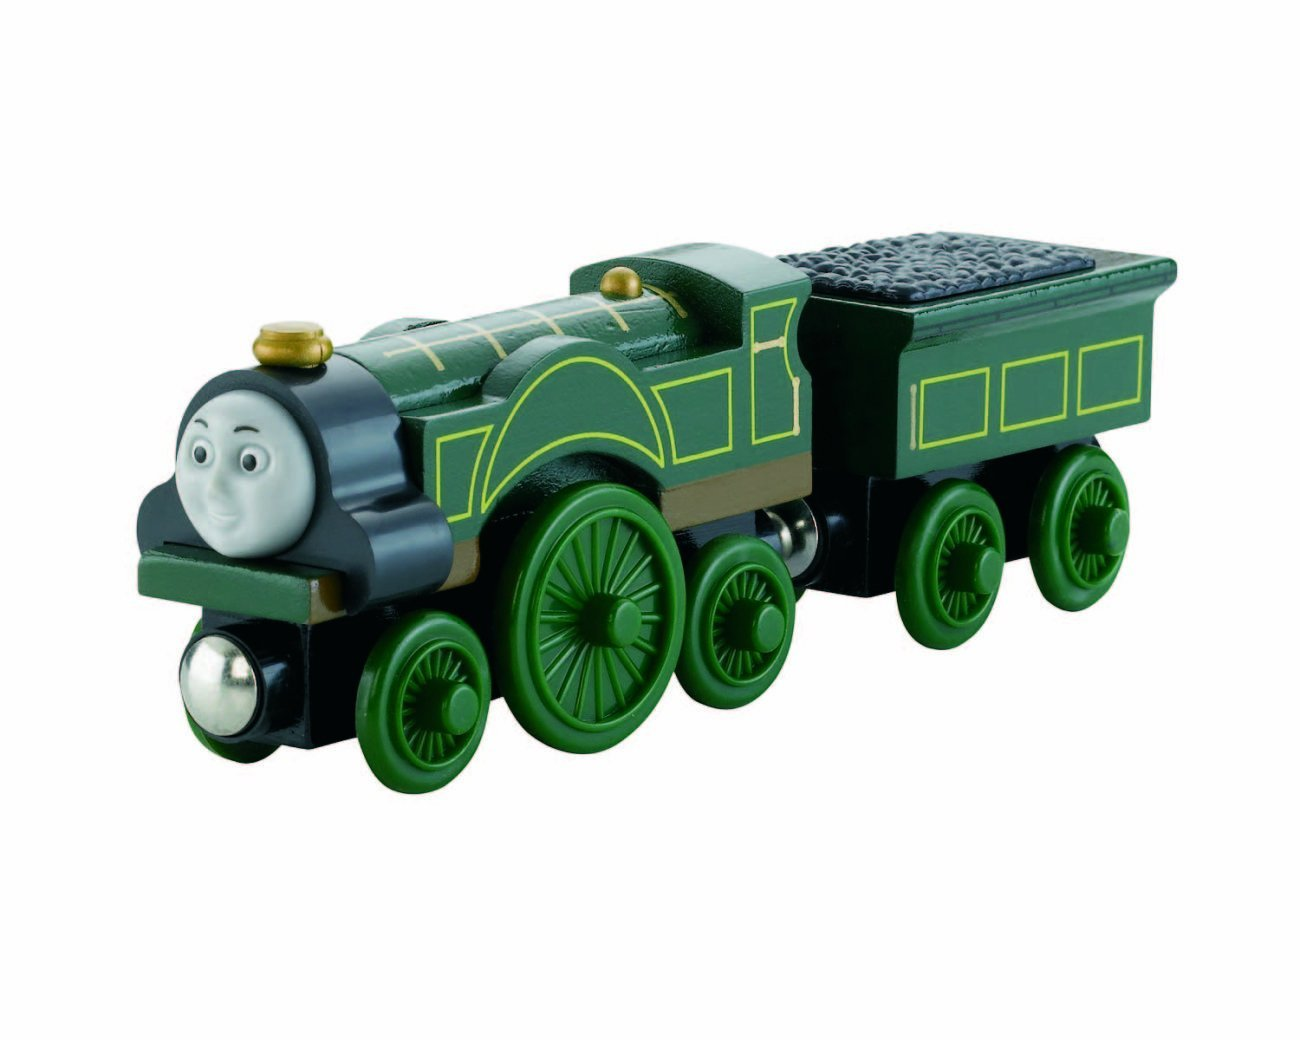 Fisher Price Thomas the Train Wooden Railway Emily Y4075